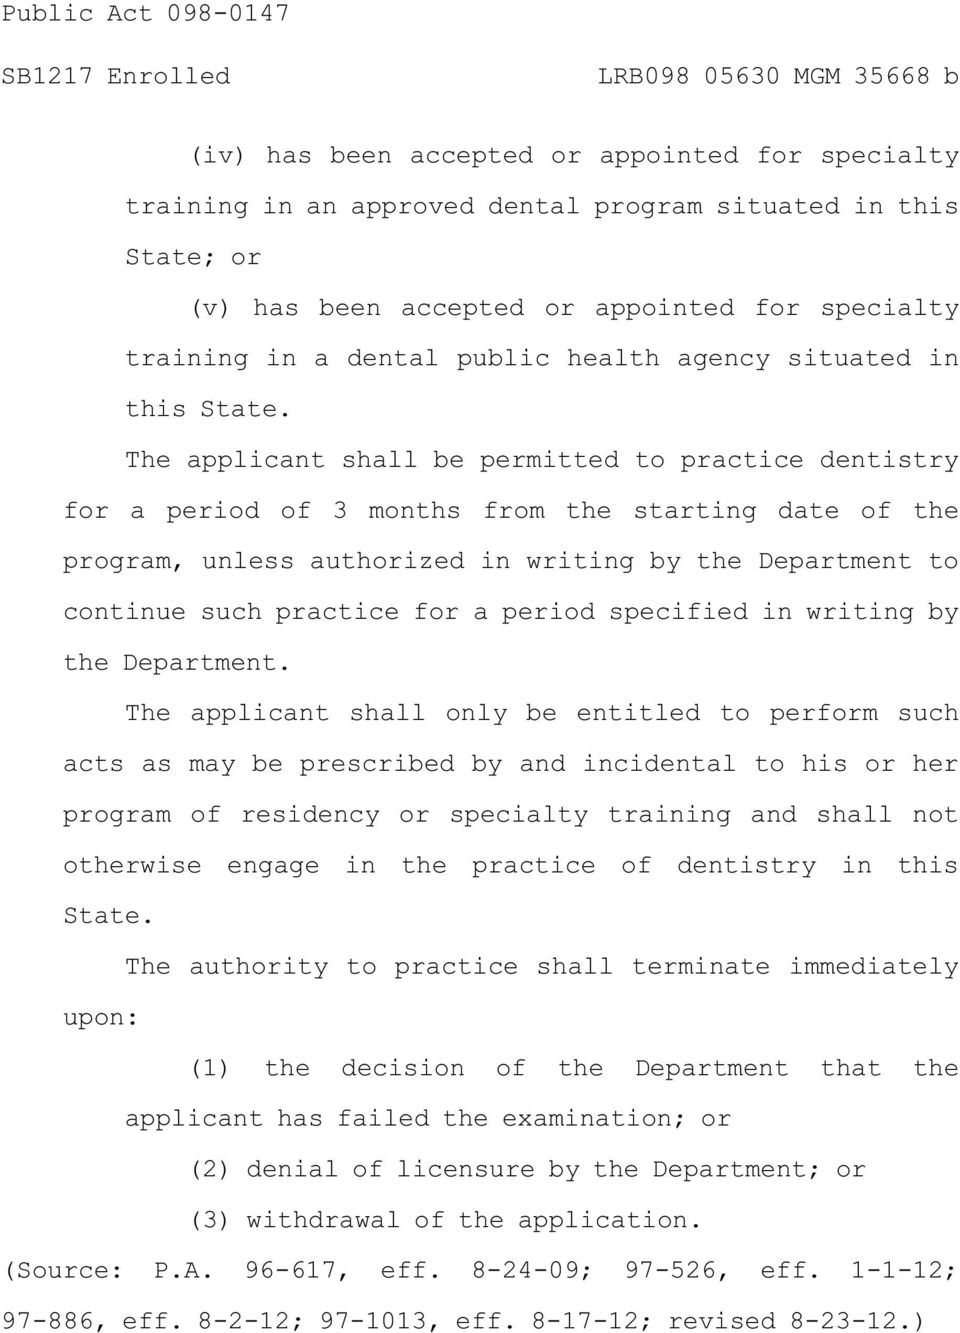 The applicant shall be permitted to practice dentistry for a period of 3 months from the starting date of the program, unless authorized in writing by the Department to continue such practice for a